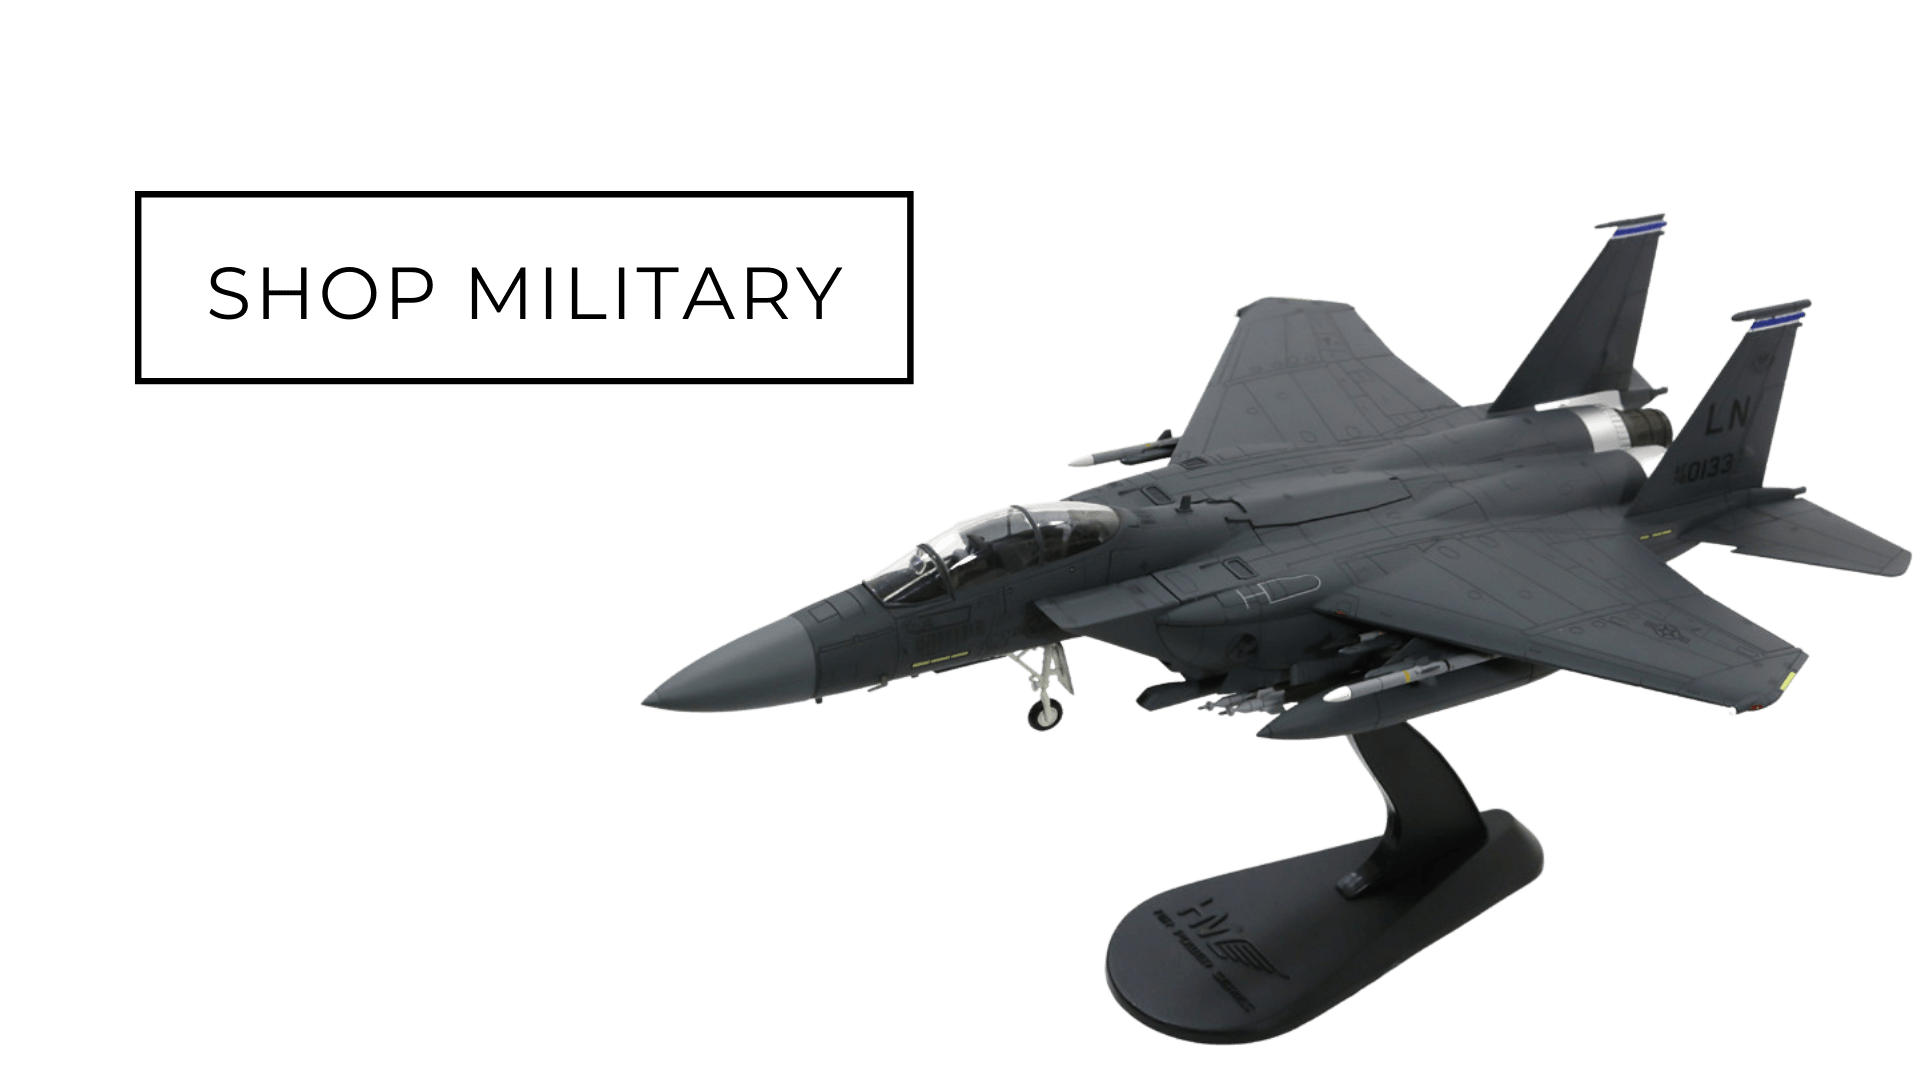 Military aircraft models from the best brands at Aircraft Model Store